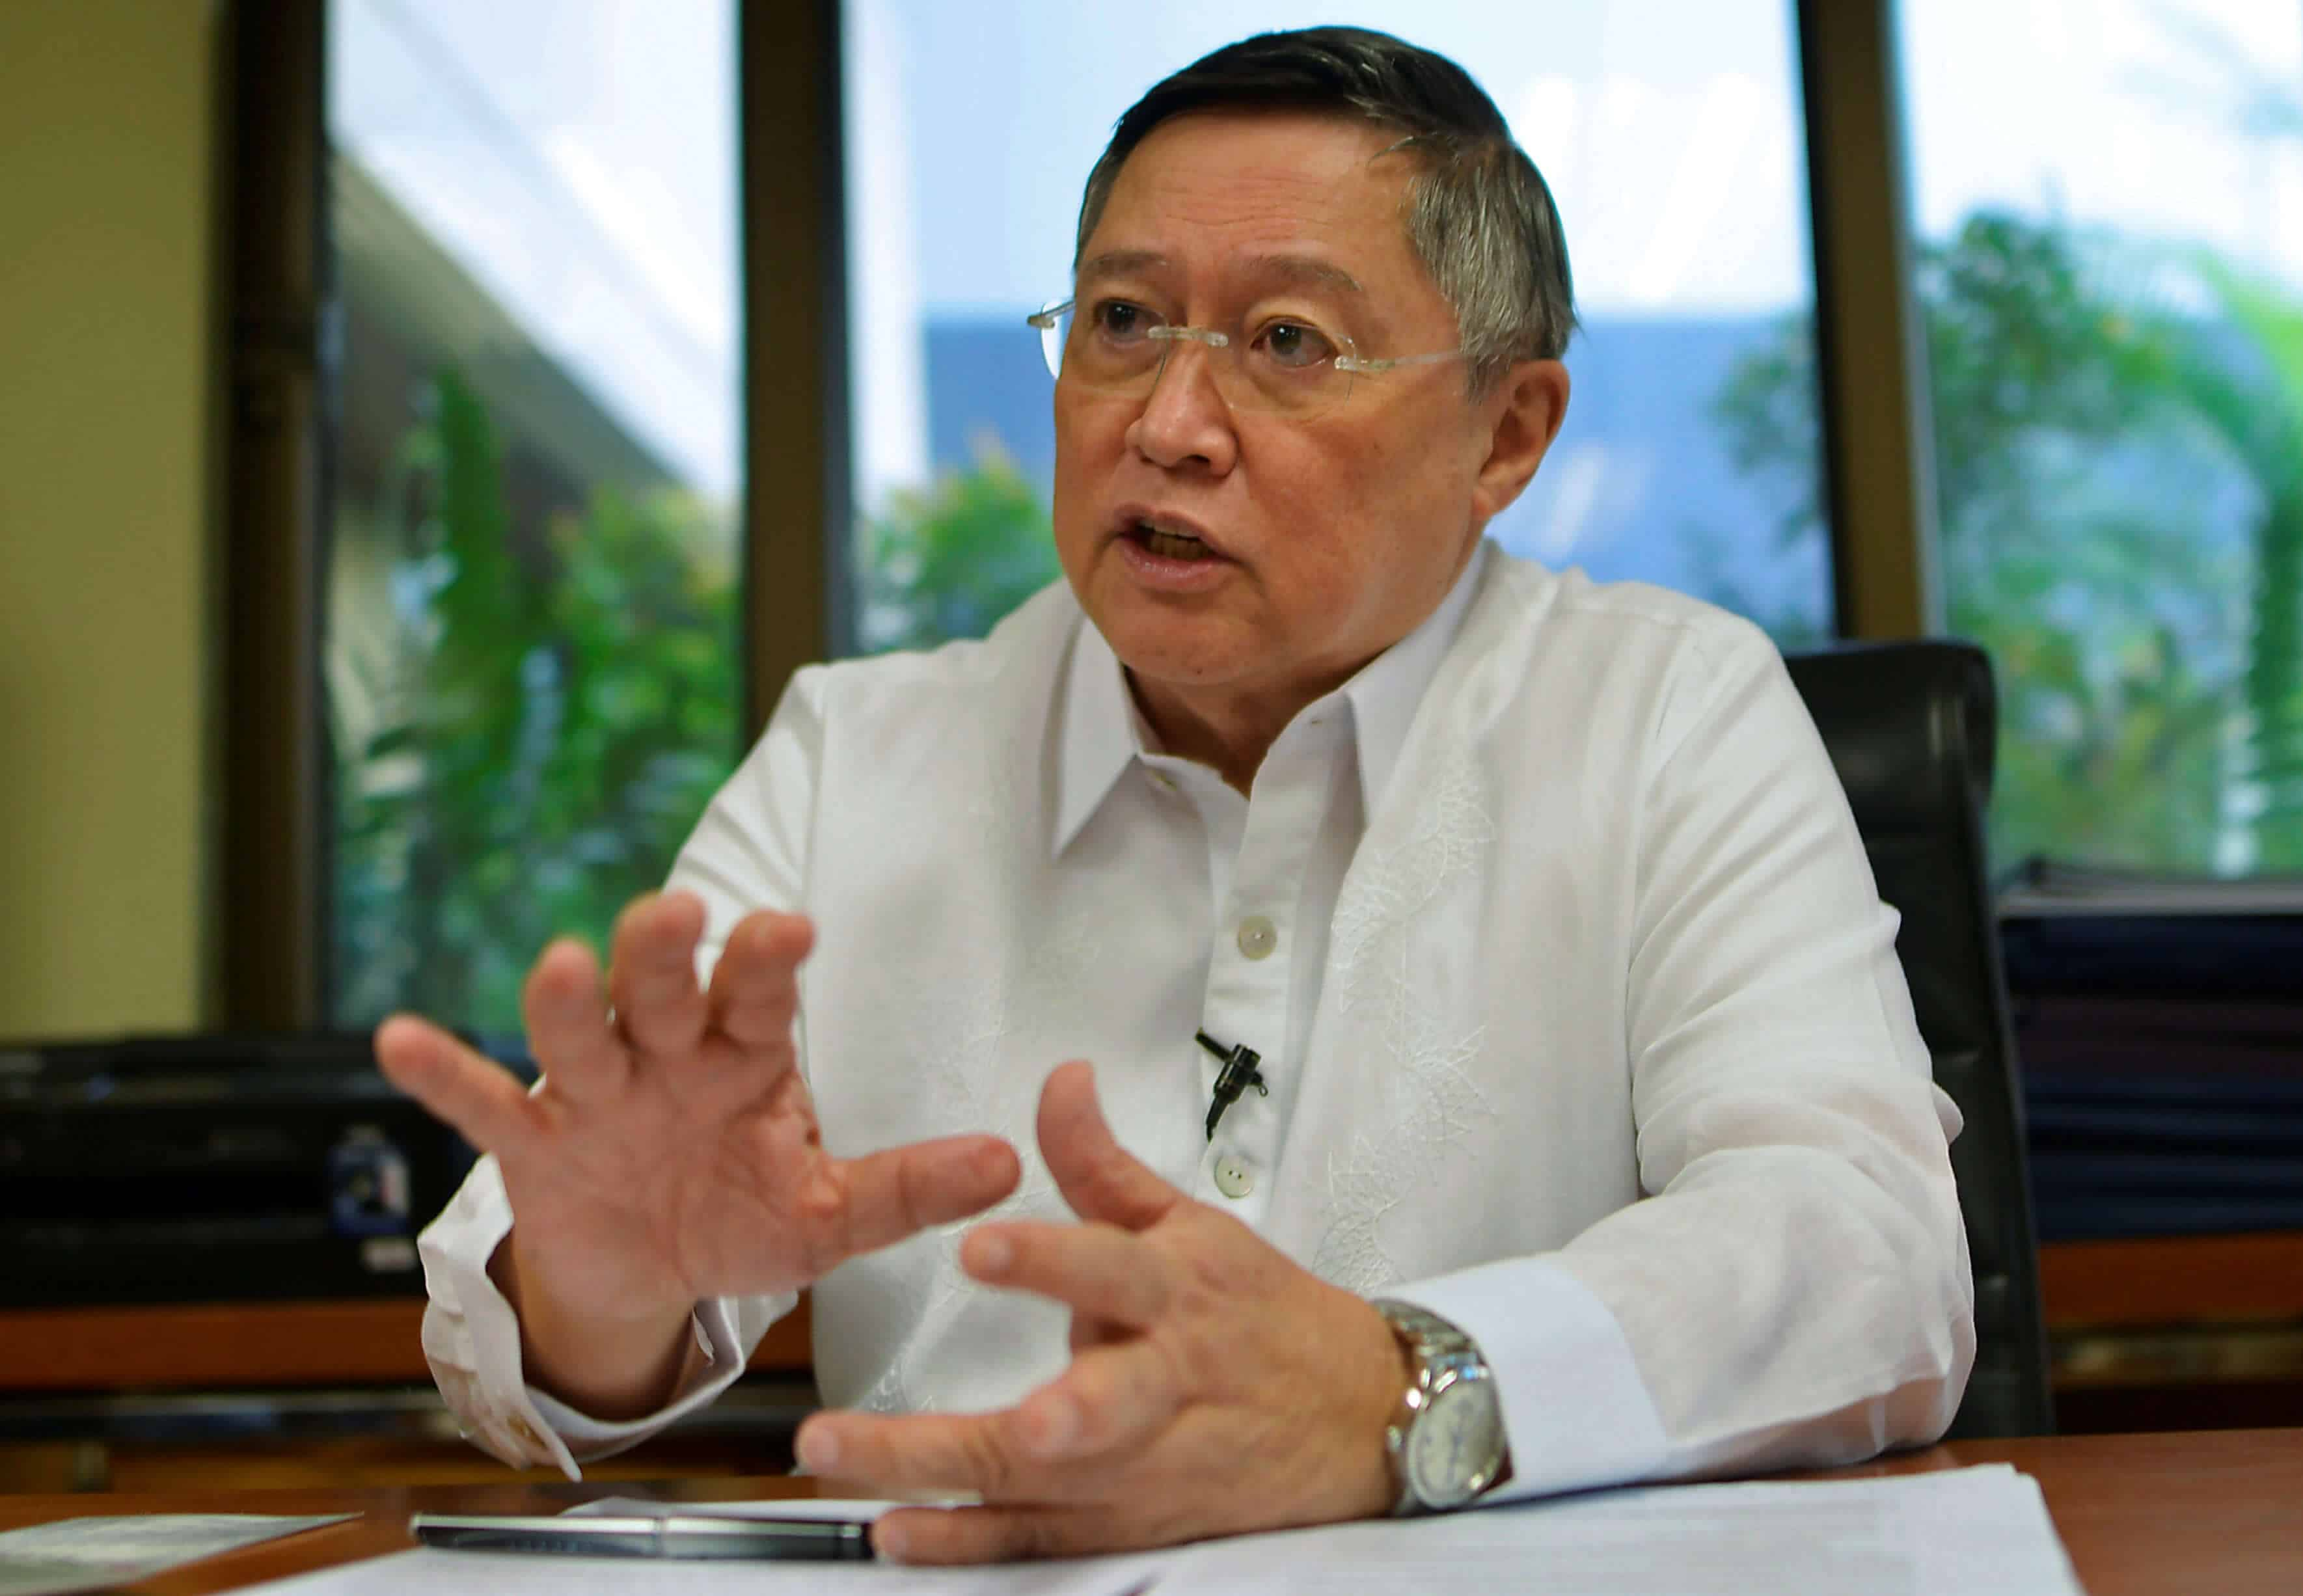 Philippine Finance Minister Warns of US Policies Disrupting Global Growth